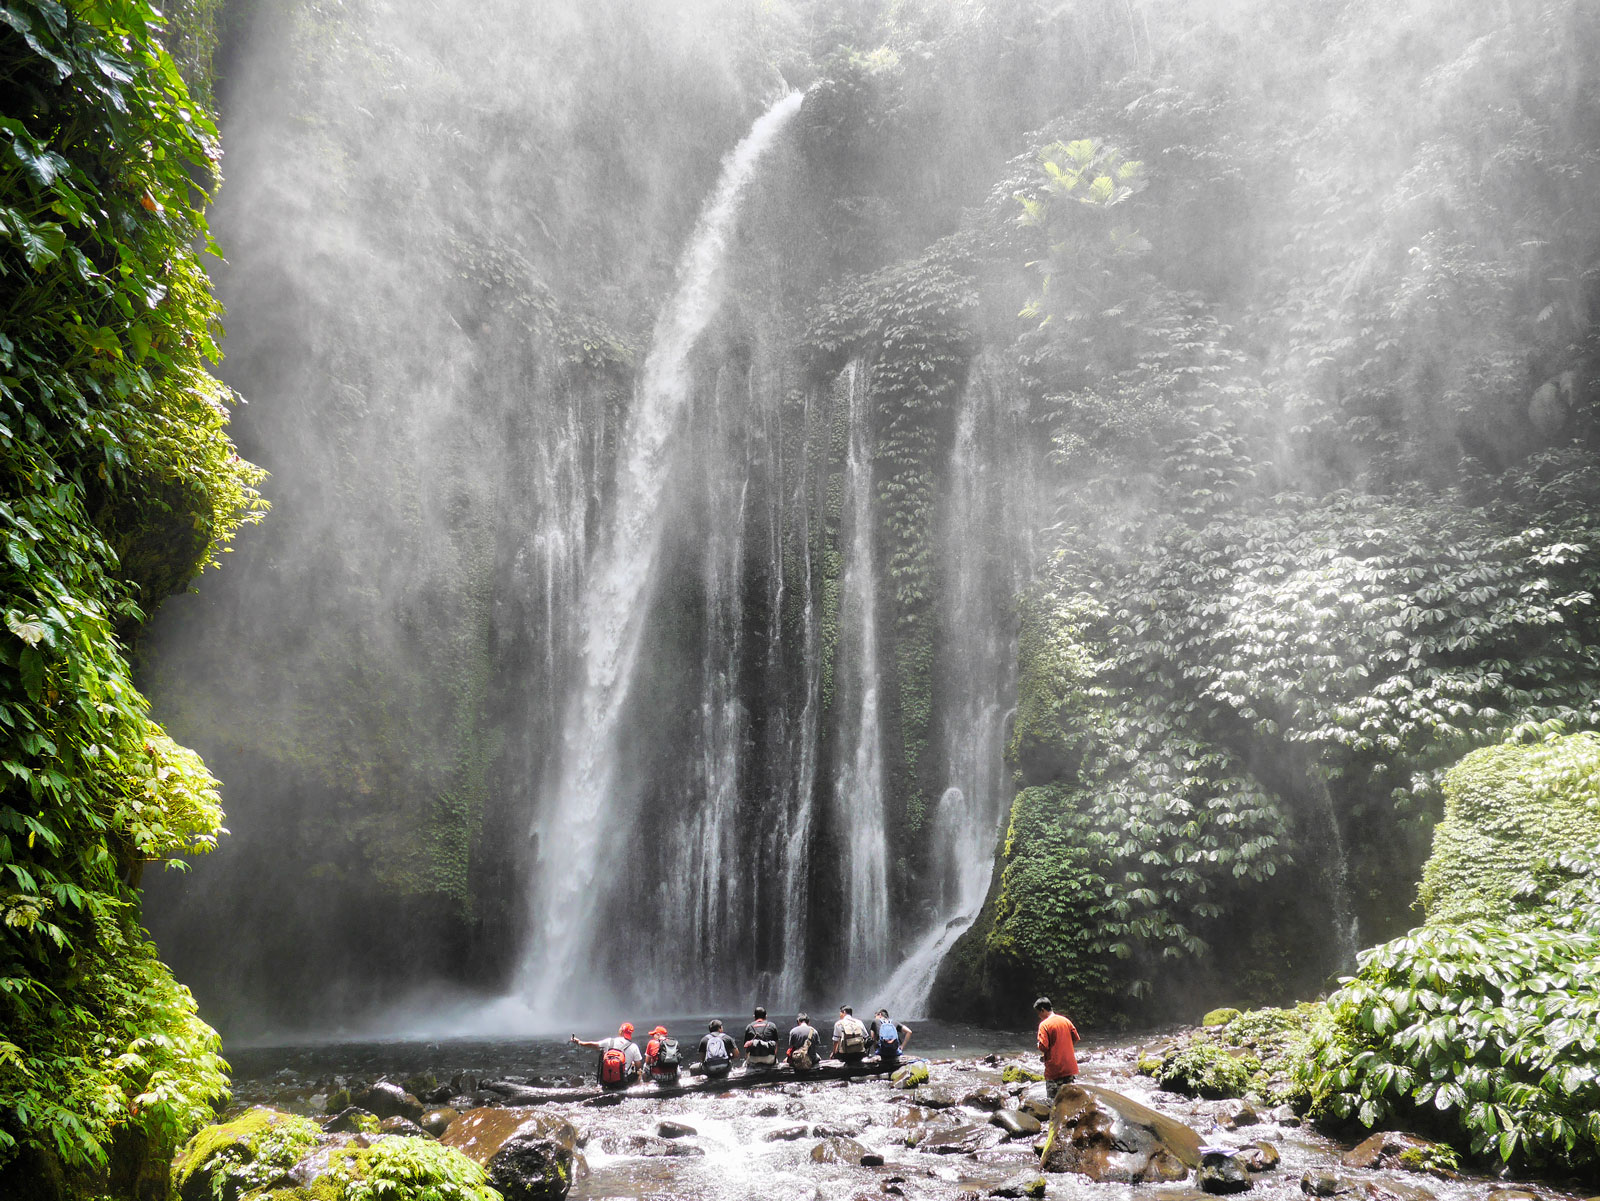 Hiking to Tiu Kelep Waterfall in Mt. Rinjani National Park - Lombok & The Gili Islands, Indonesia